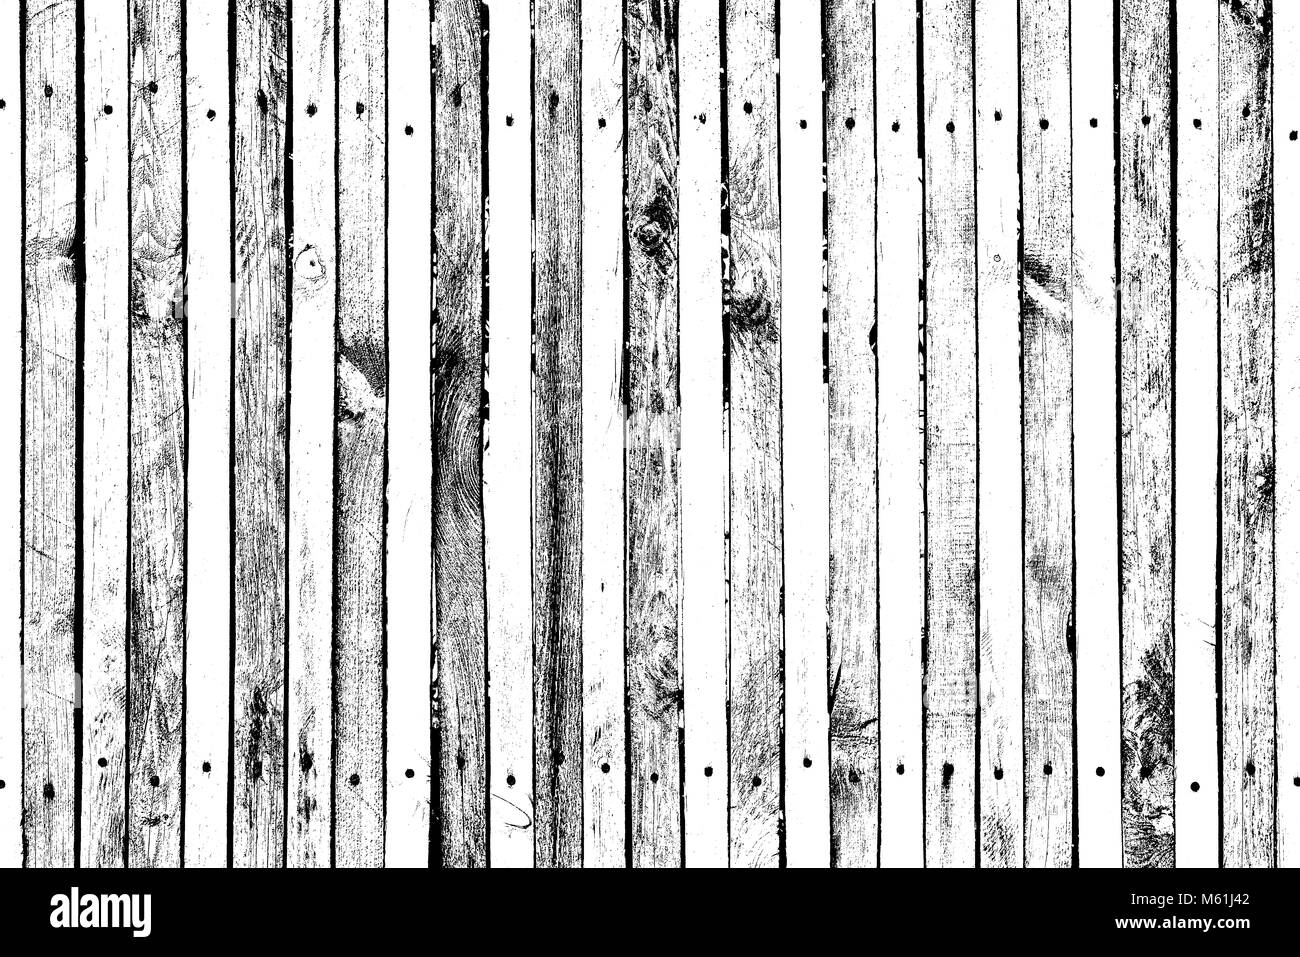 Grunge wooden pattern for overlay on surfaces, planks with many nails and screws, many knots, cracks, scratches - Stock Image